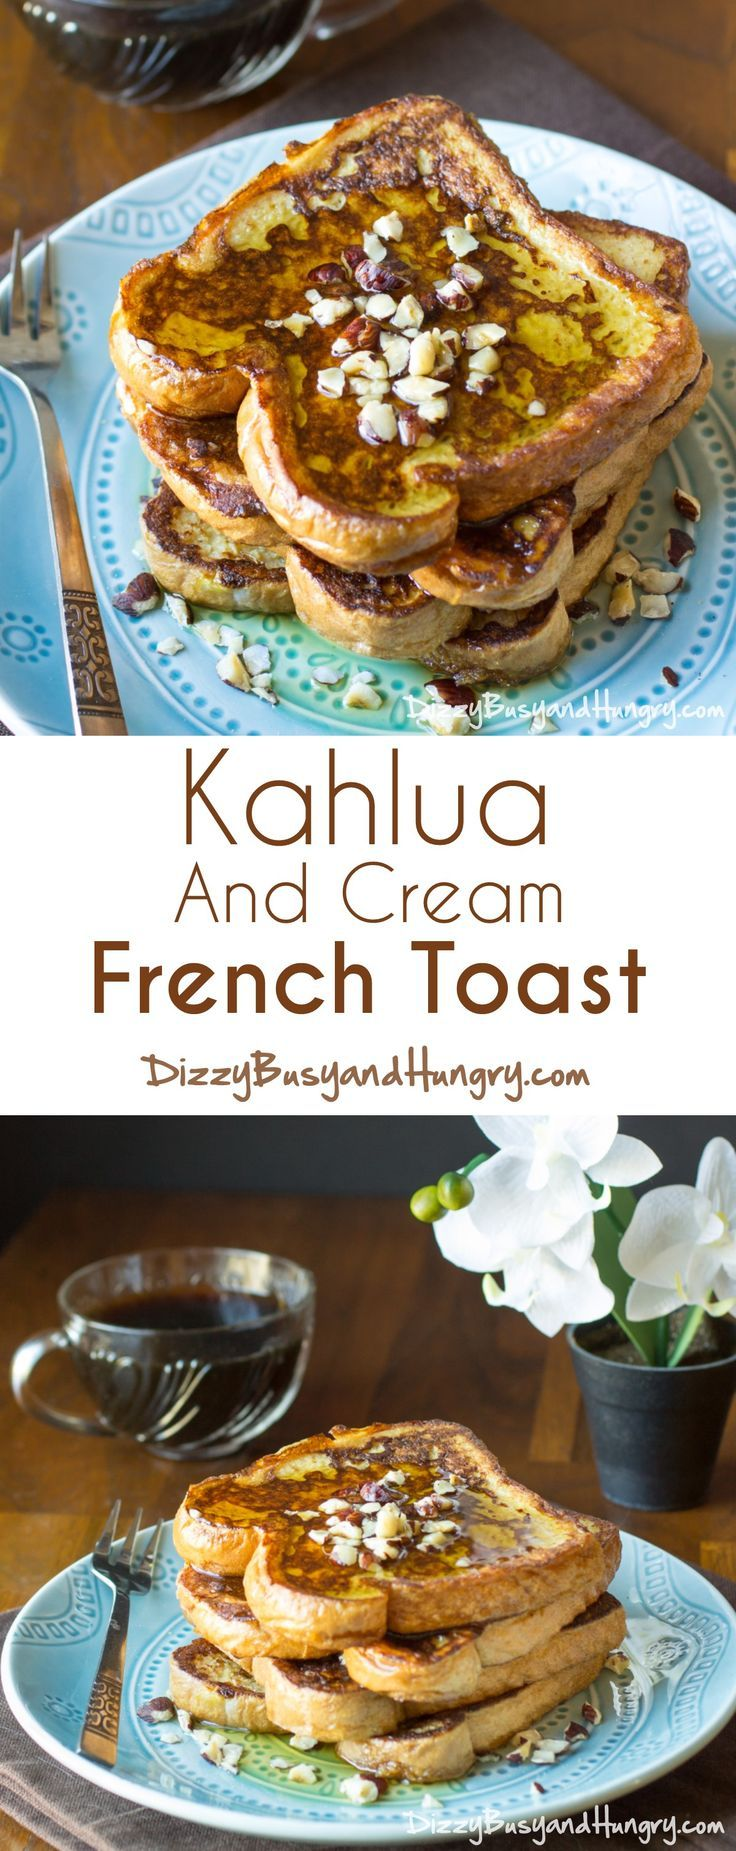 Kahlua and Cream French Toast | http://DizzyBusyandHungry.com - Elegant variation on French toast incorporating the coffee-infused sweet flavor of Kahlua!